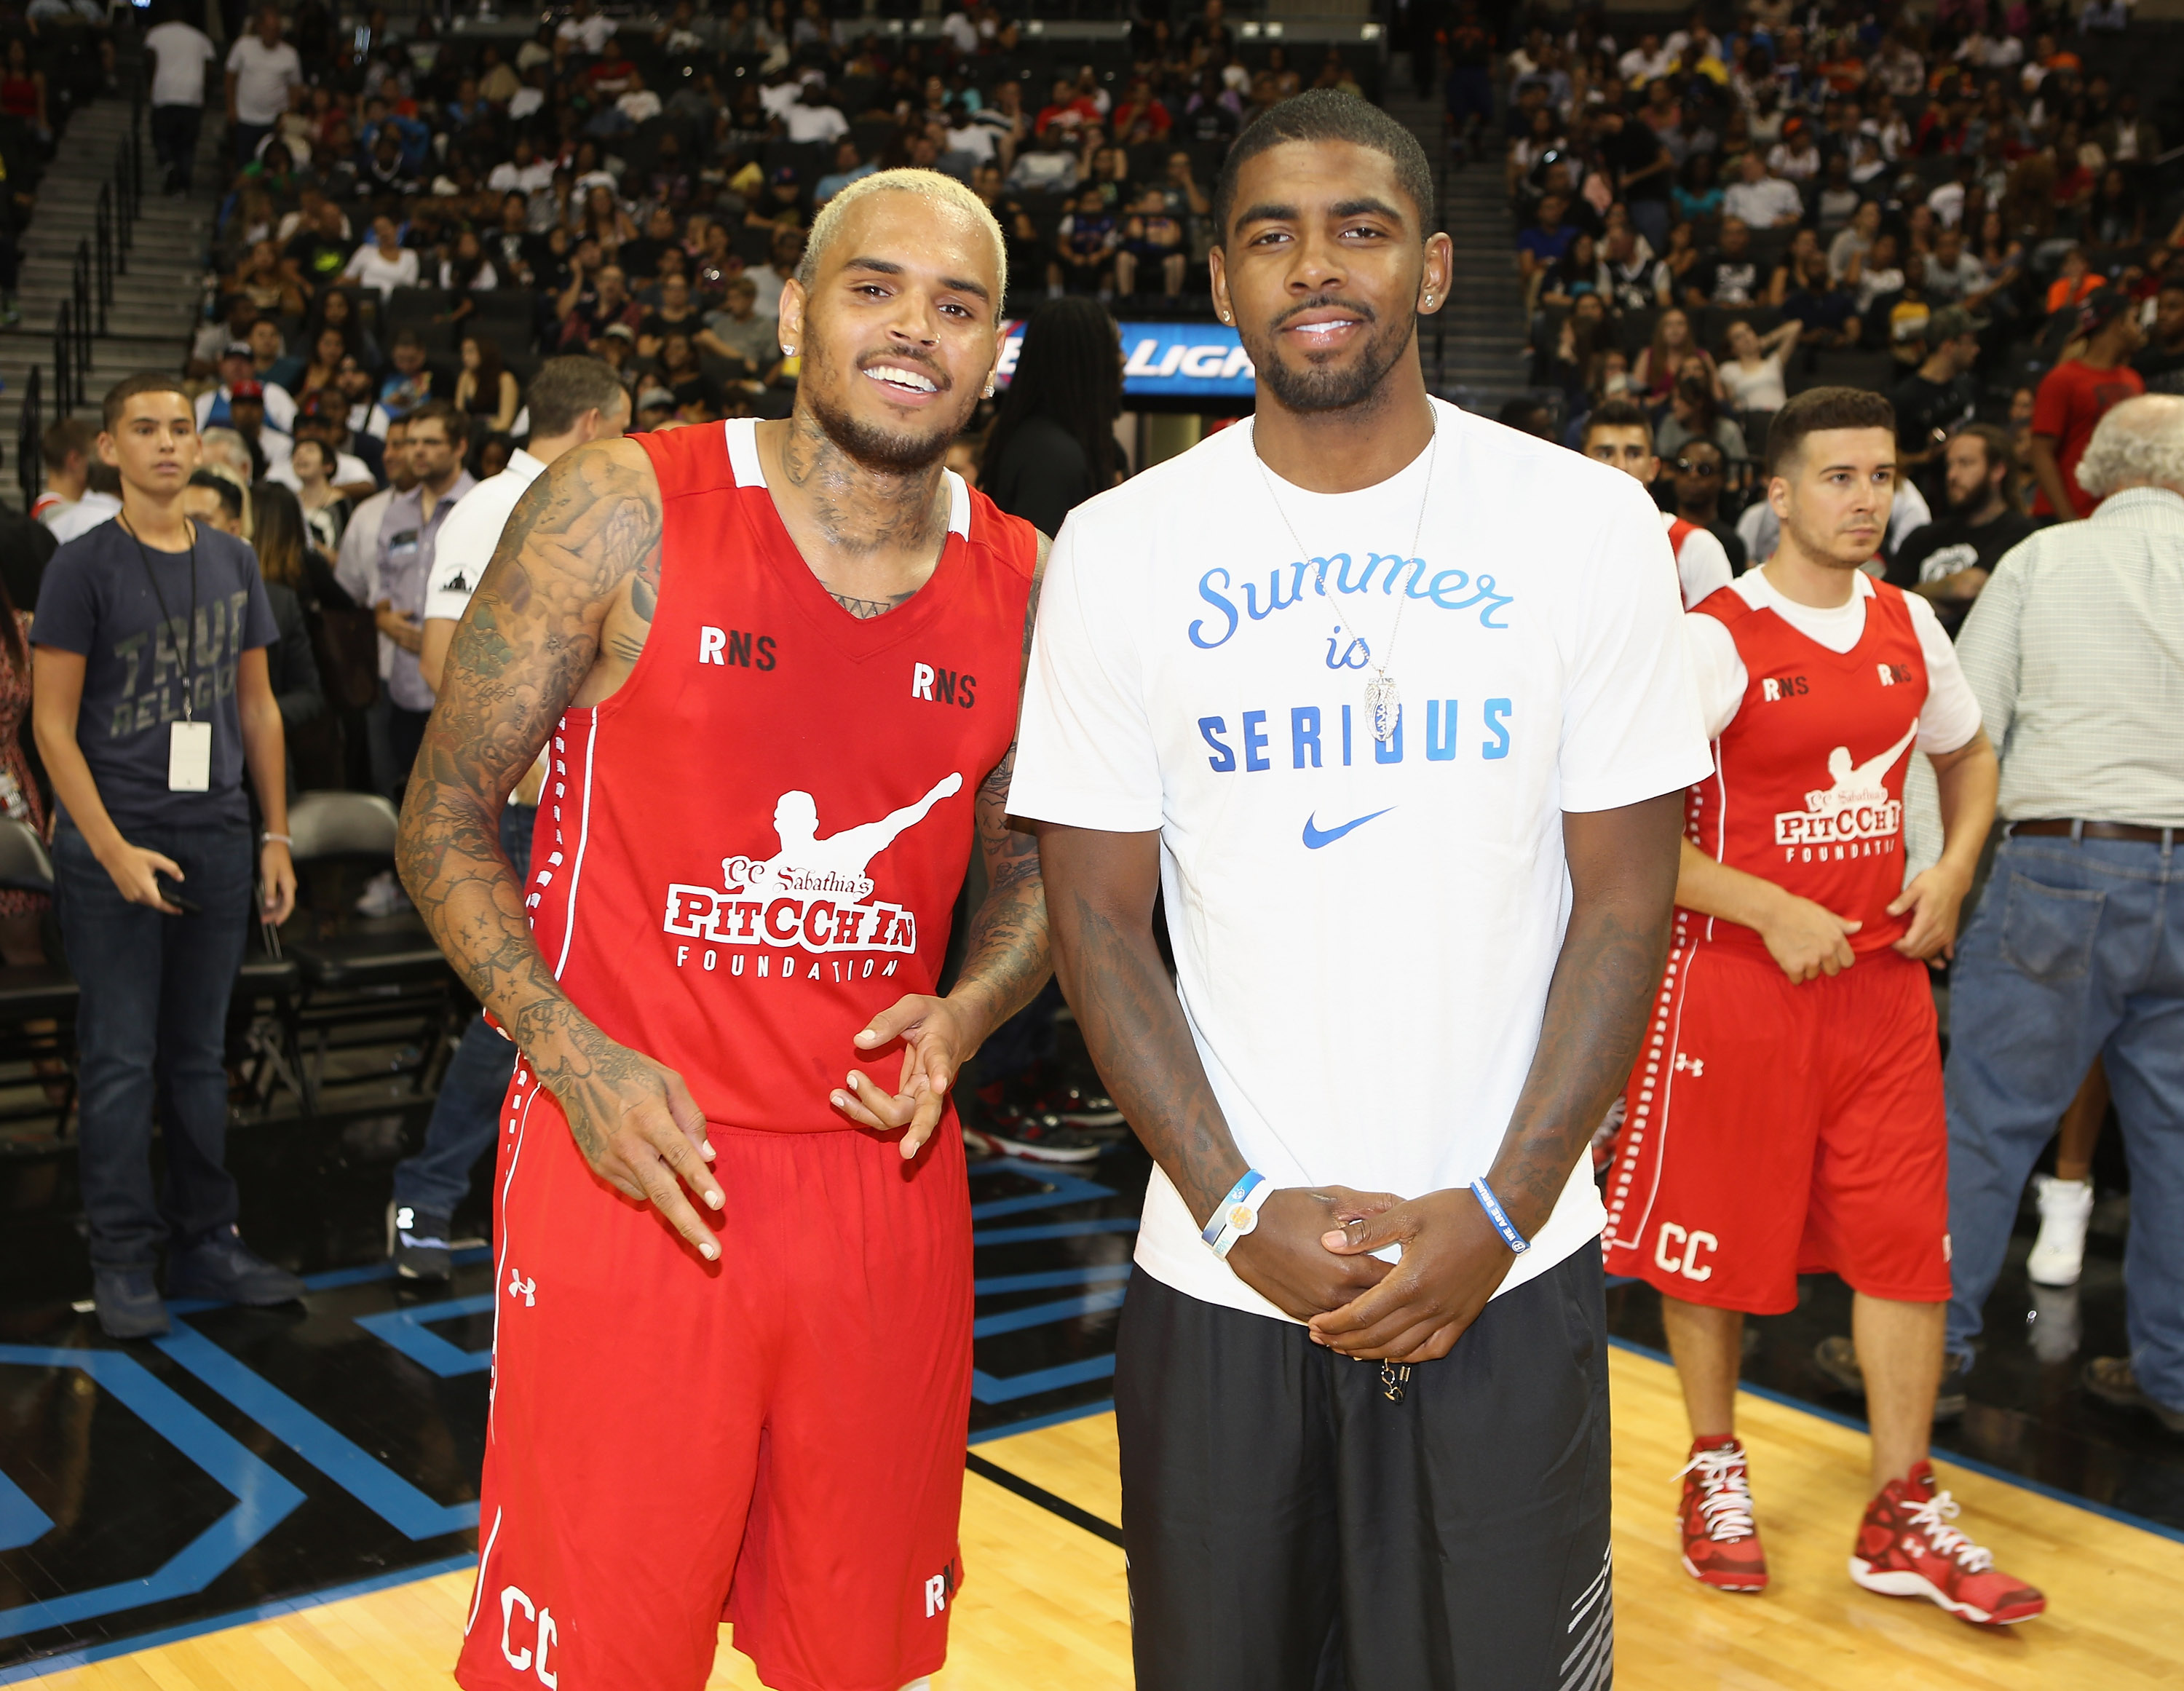 Chris Brown and Kyrie Irving